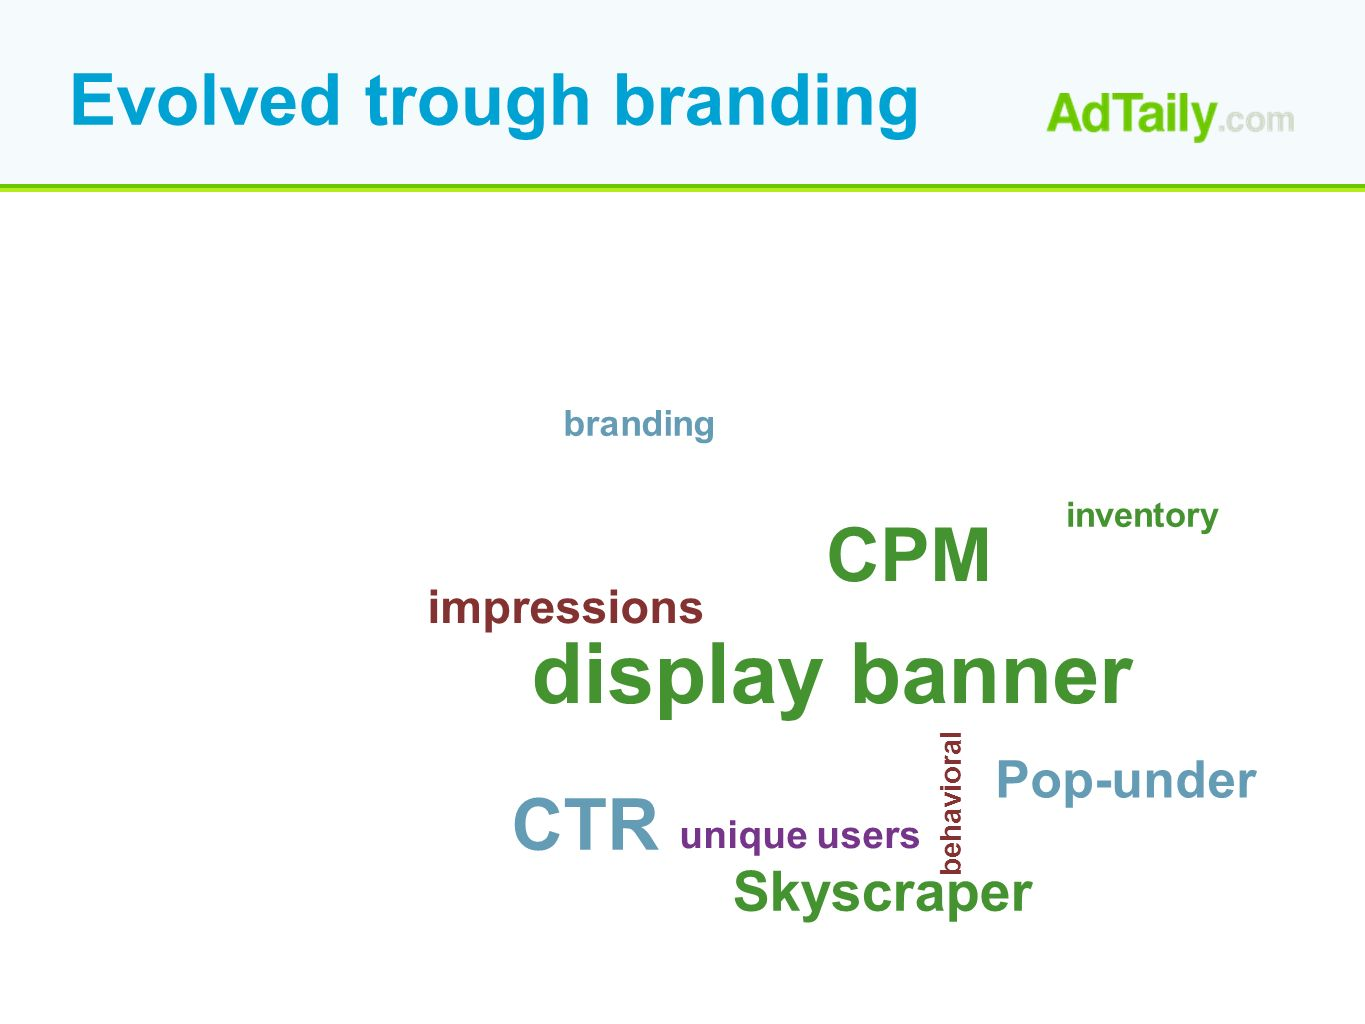 Evolved trough branding CPM display banner CTR Pop-under Skyscraper behavioral unique users impressions branding inventory